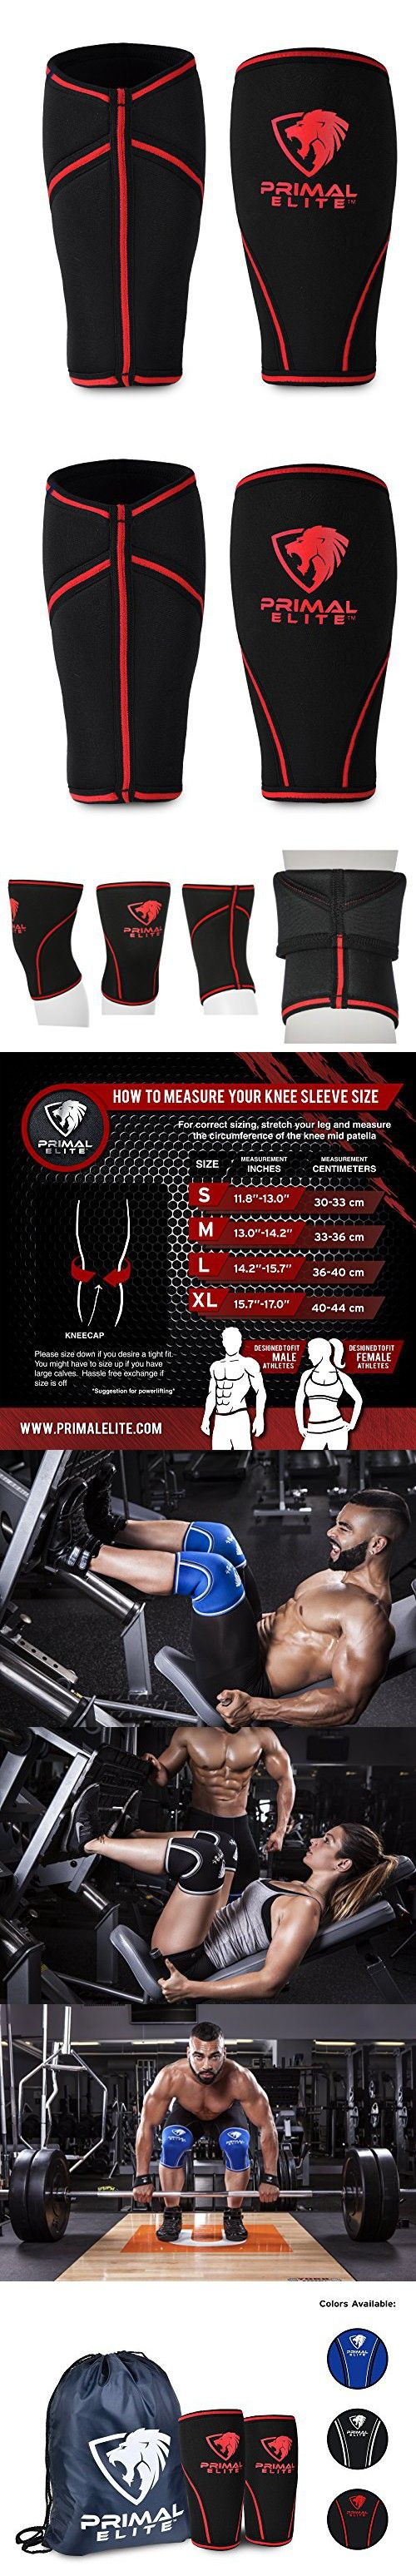 Knee Sleeves ( 1 Pair w/ bag ) Best Orthopedic Knee Support & Pain Compression Brace for Squats, Crossfit WOD, Weightlifting, Powerlifting - Primal Elite 5mm and 7mm Strong Knee Sleeves - Unisex